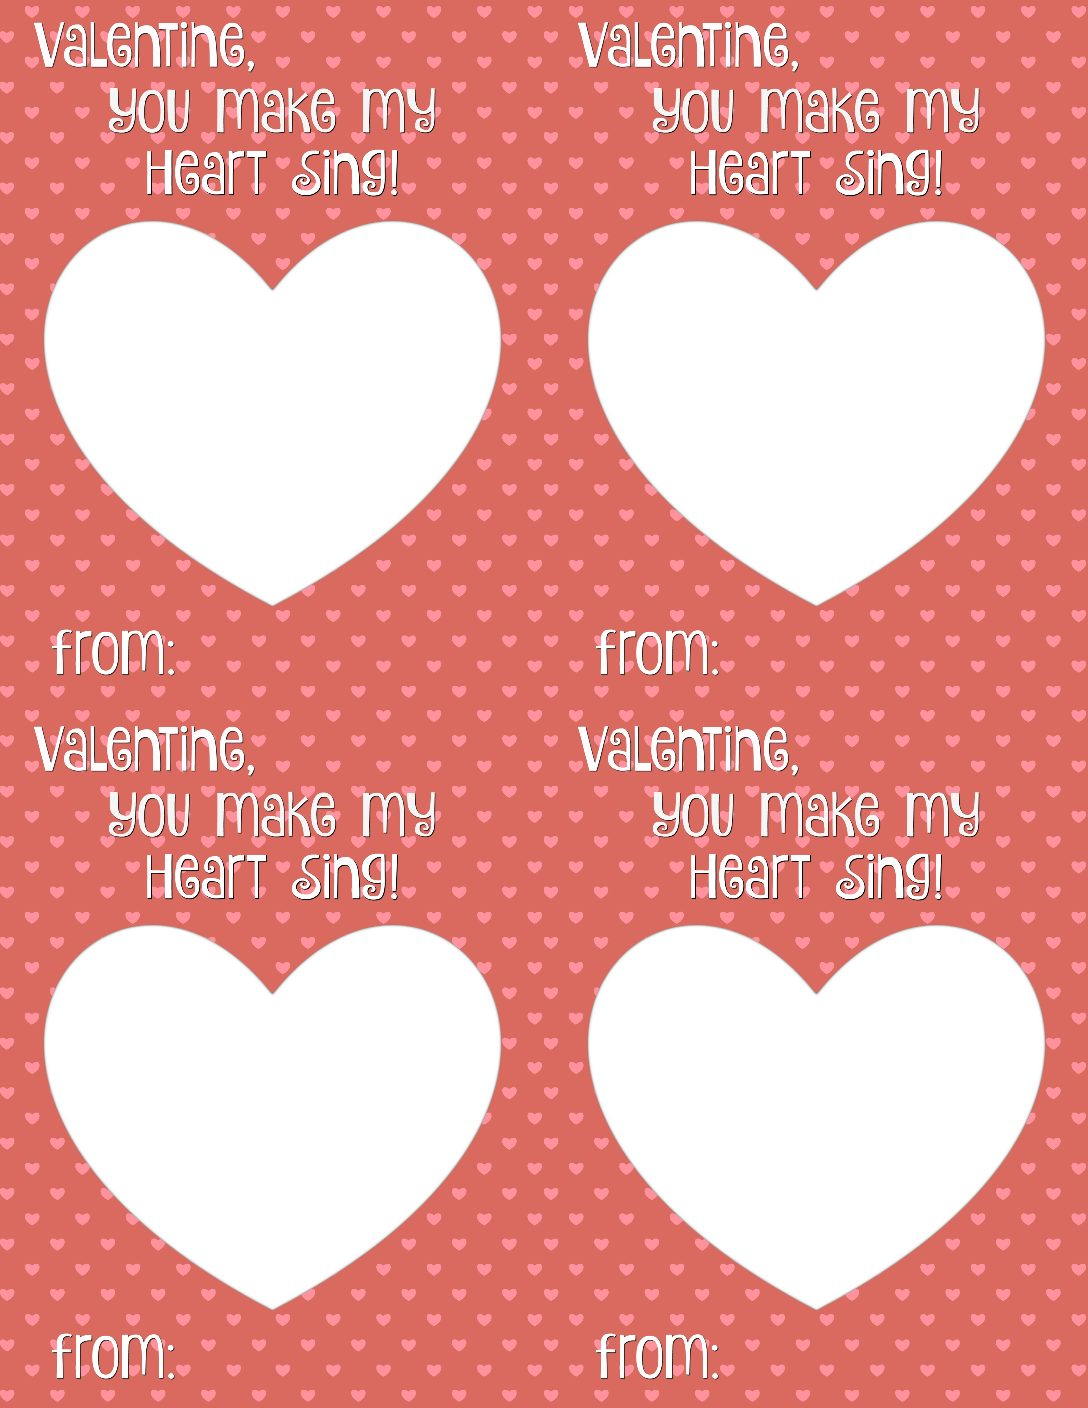 You Make My Heart Sing Valentine Card Printable Smashed Peas – Free Valentine Printable Cards